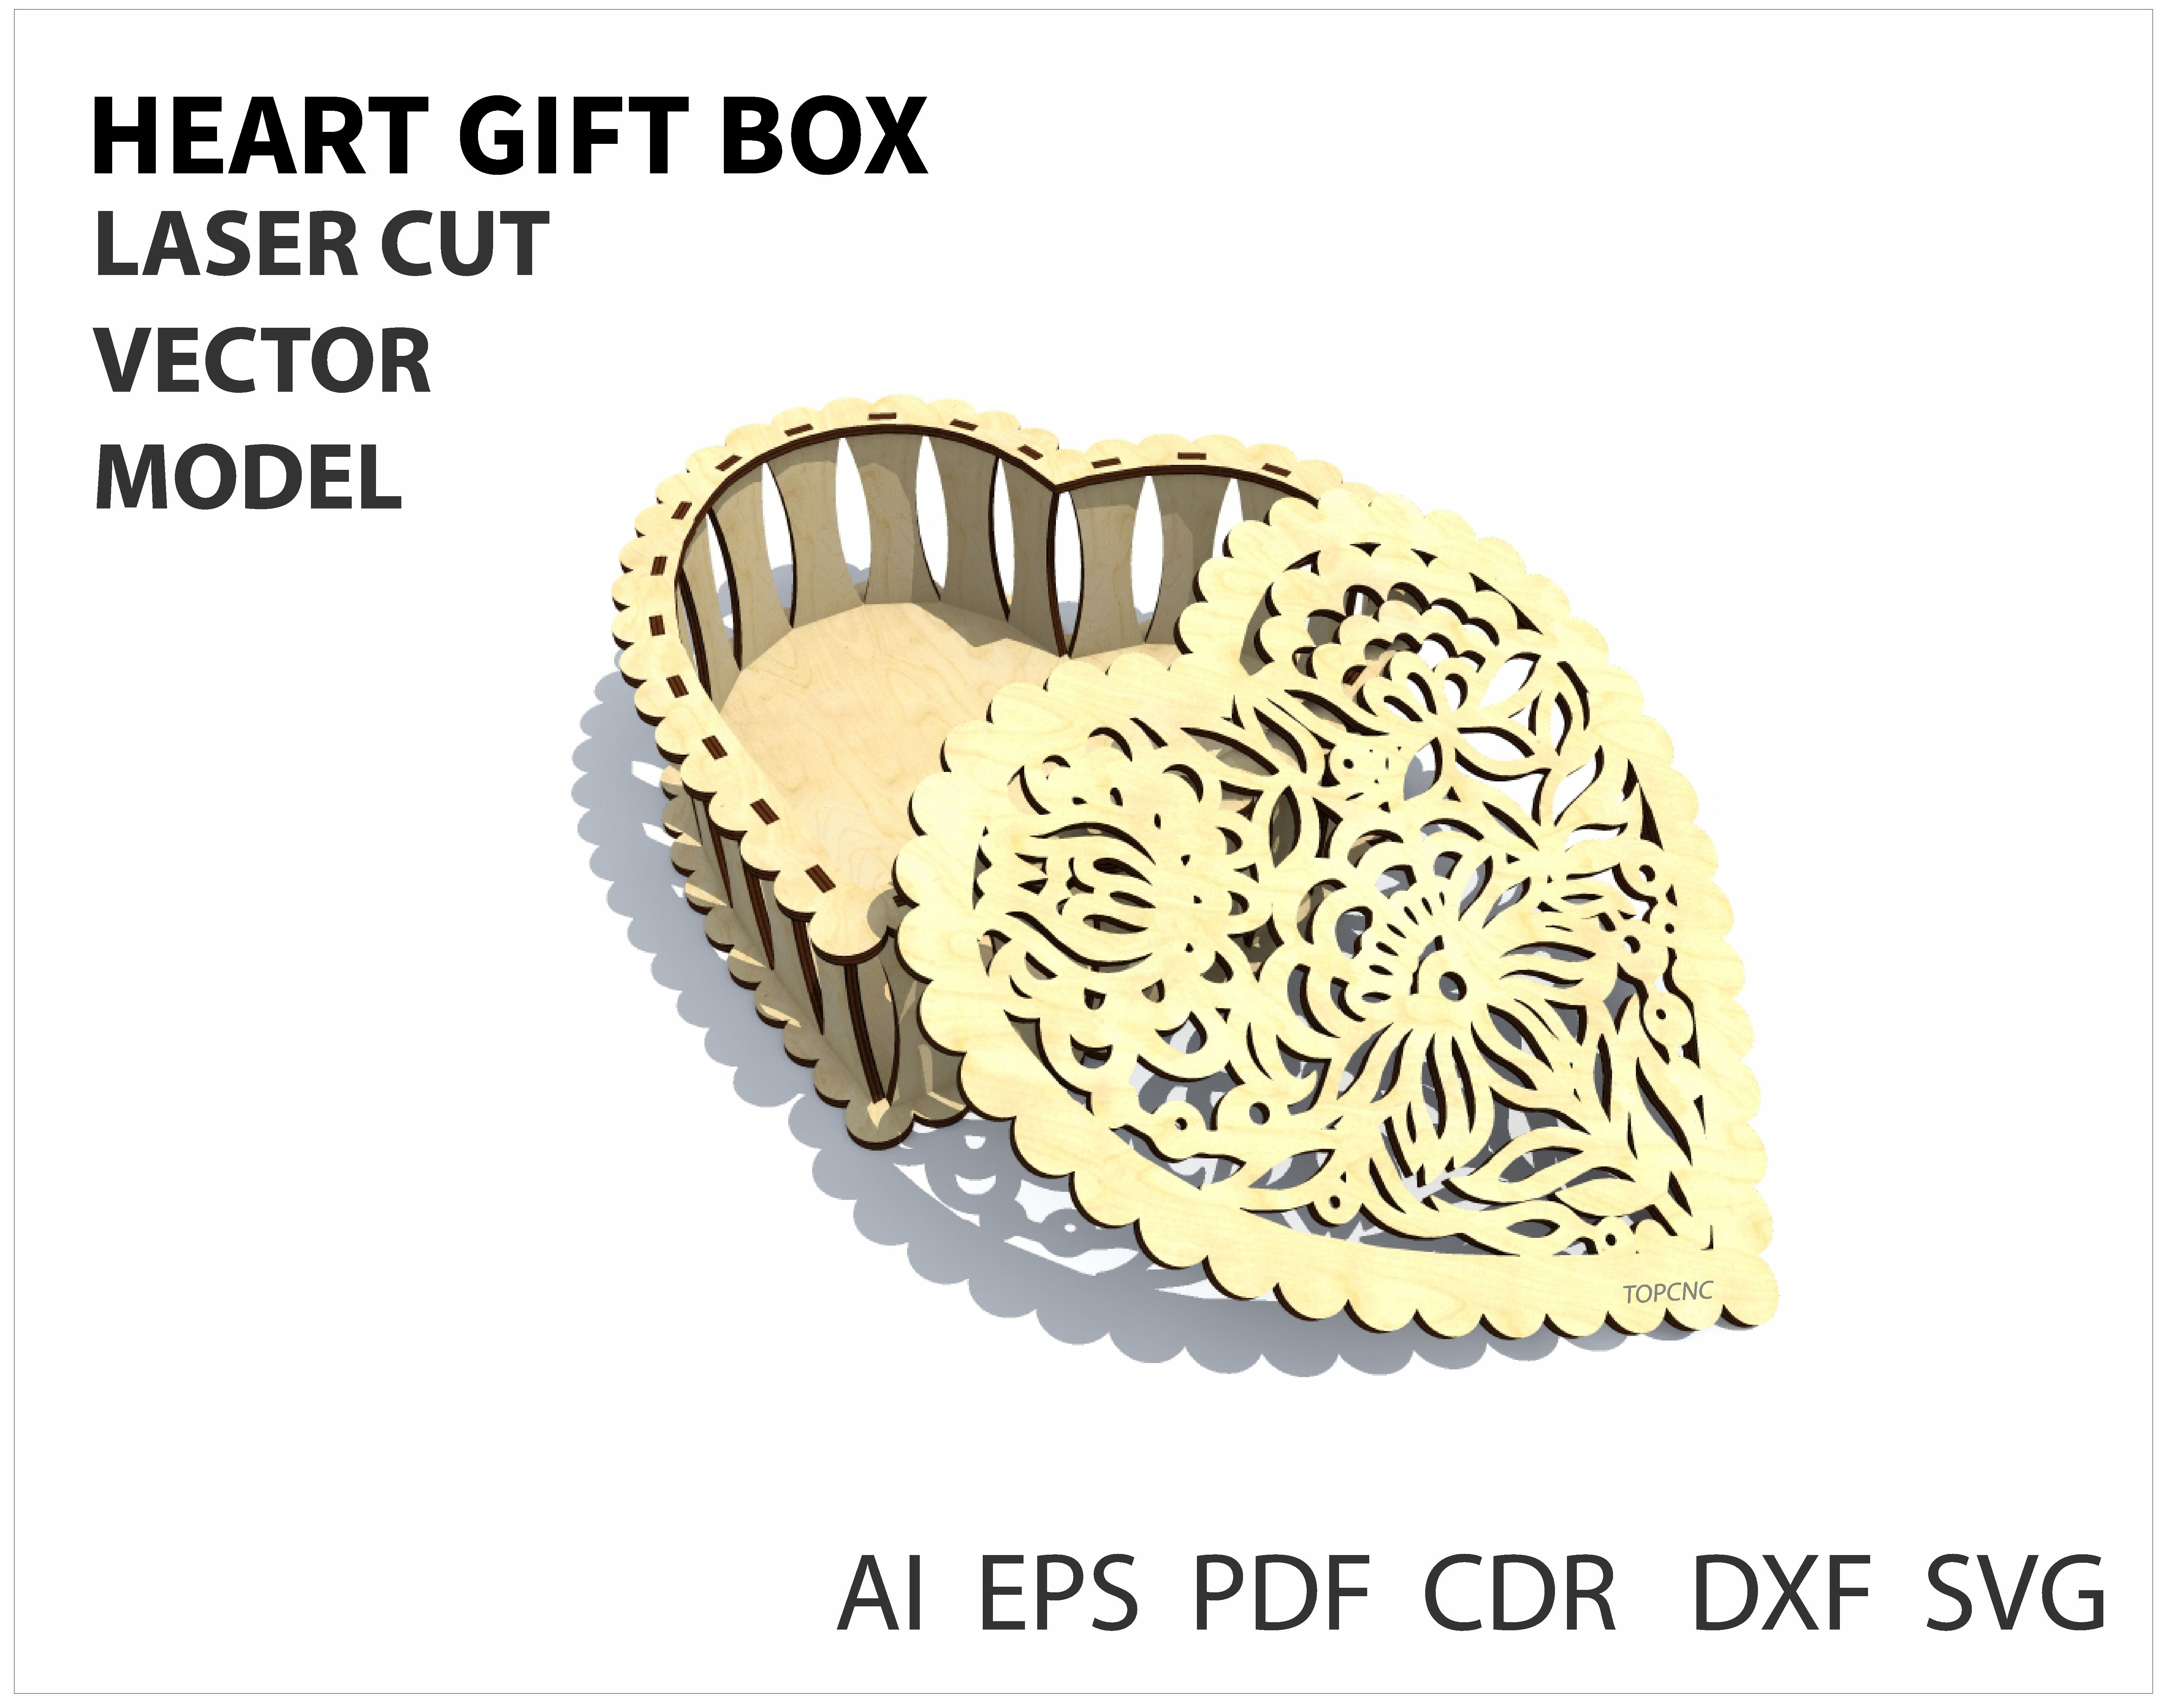 Geometric Heart Shaped Gift Box Plans for CNC Router Laser Cutting